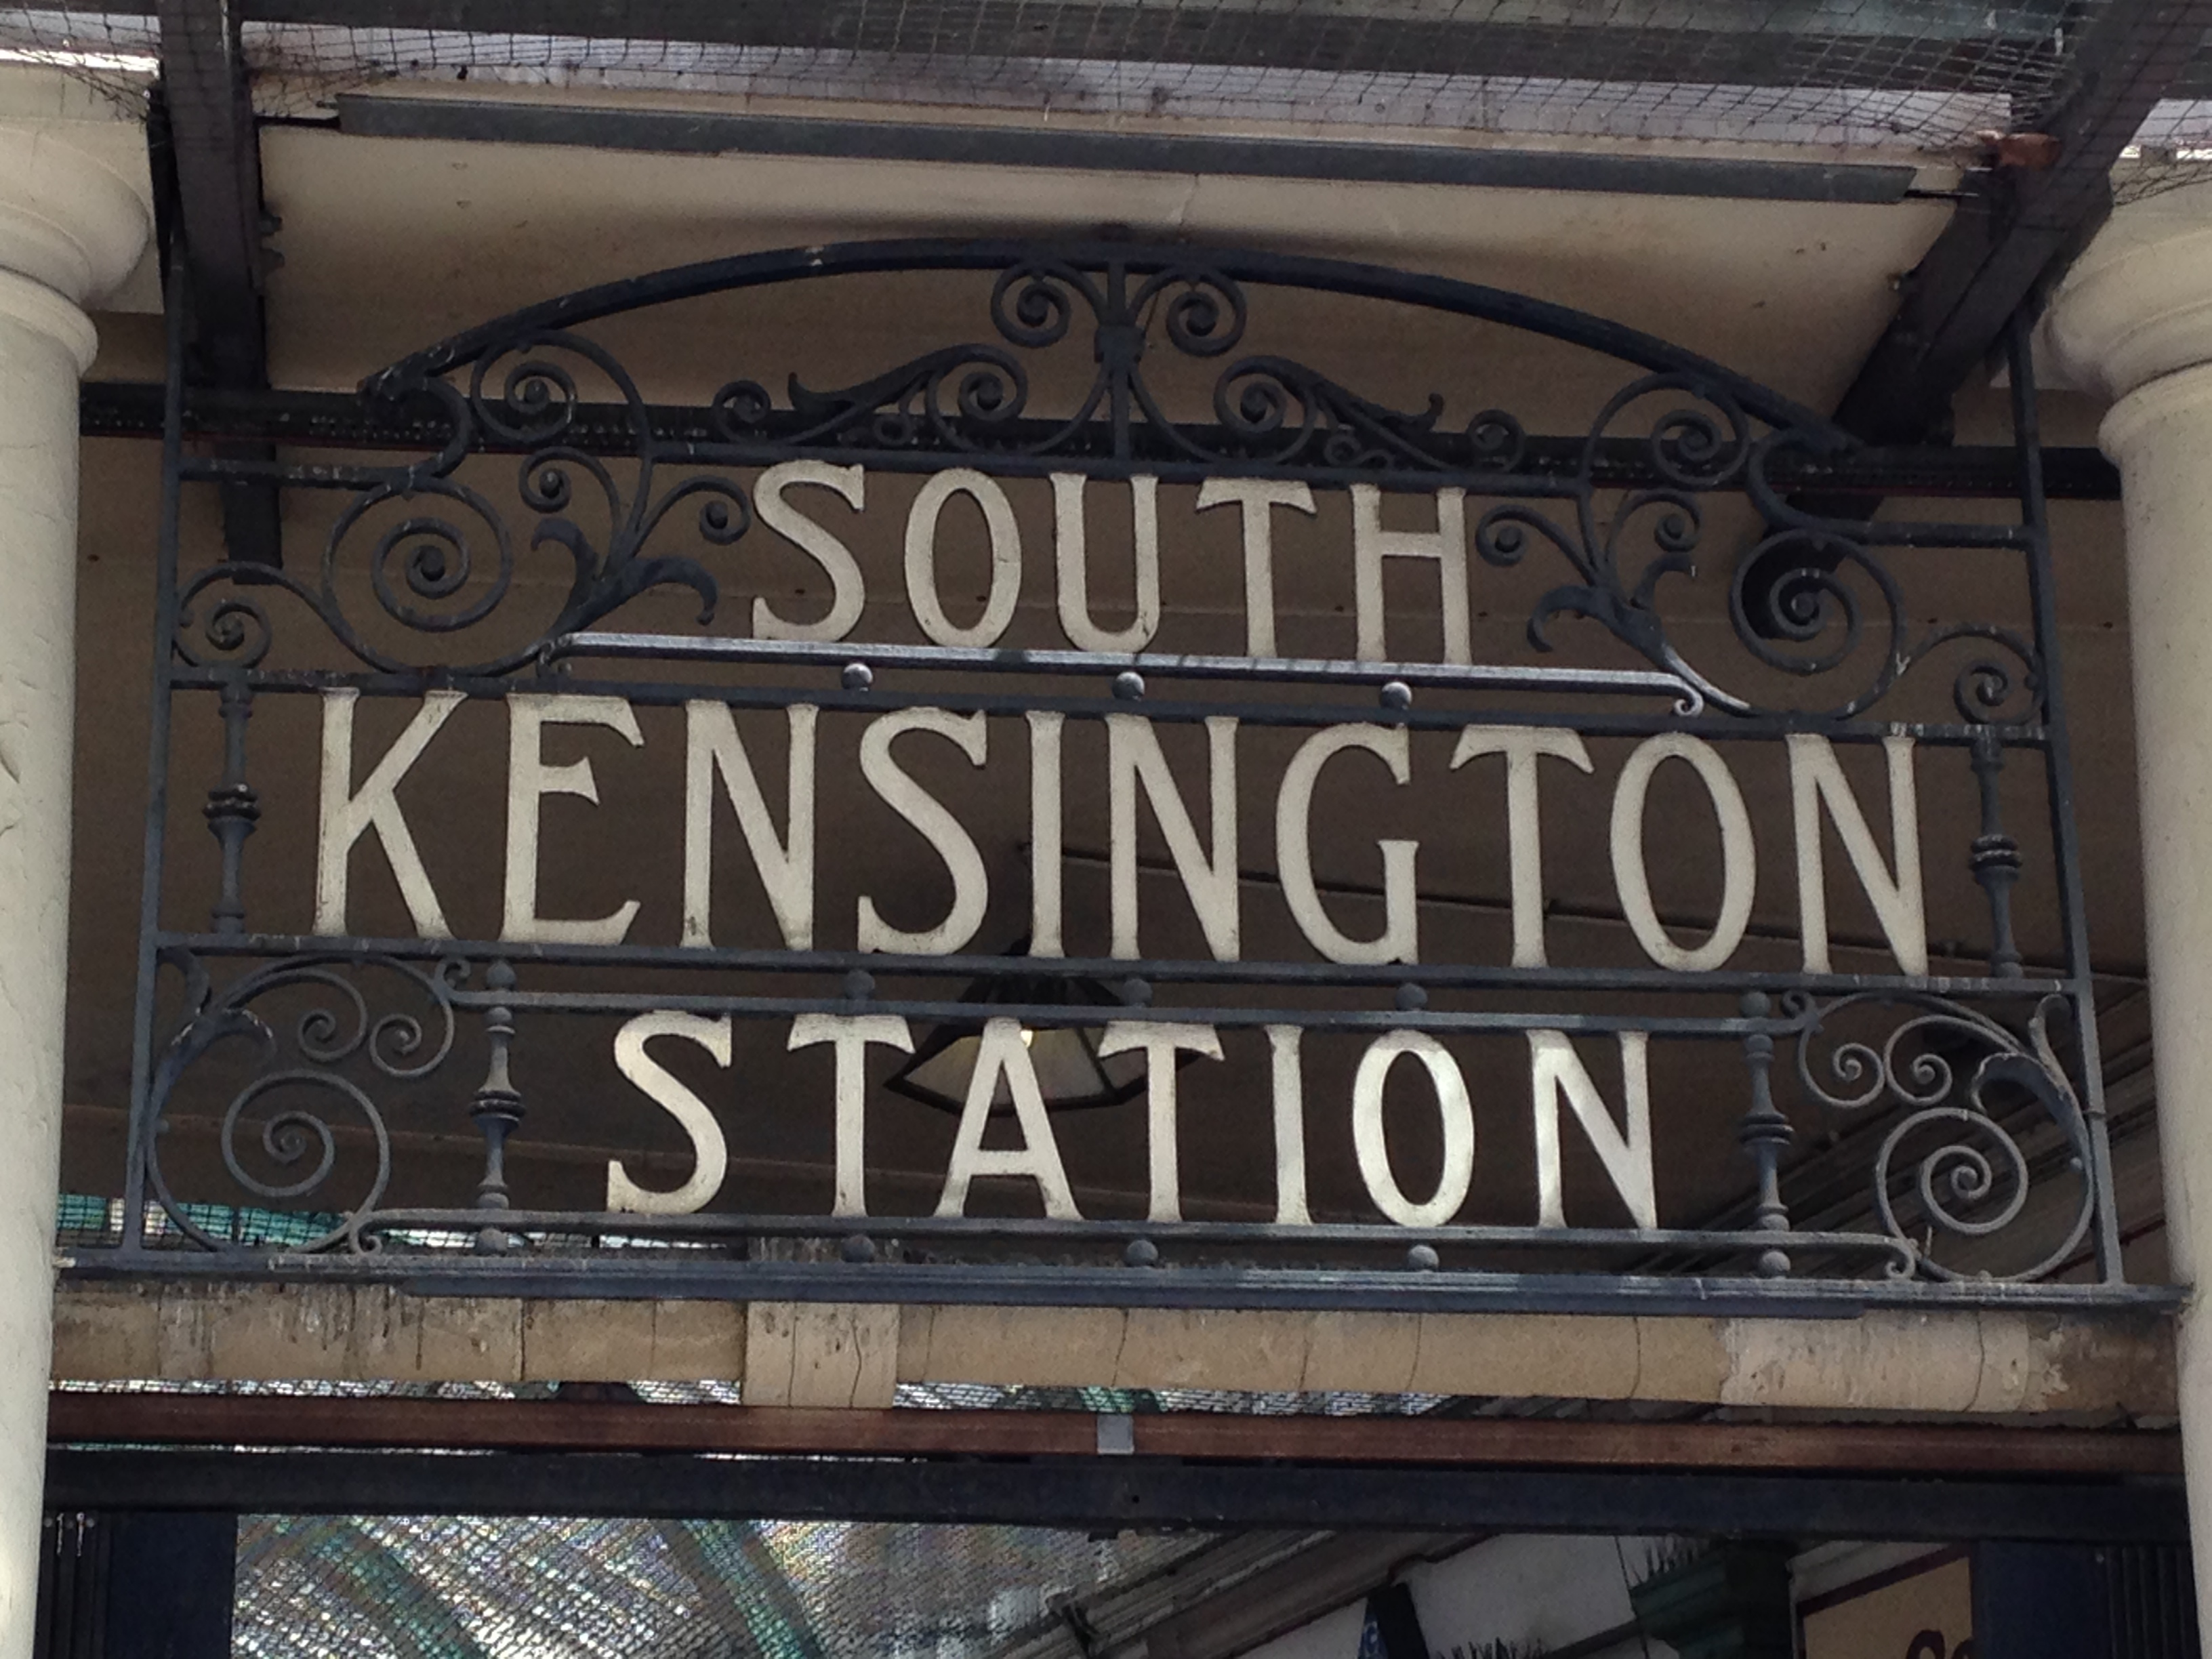 Let our journey in Kensington, London begin!